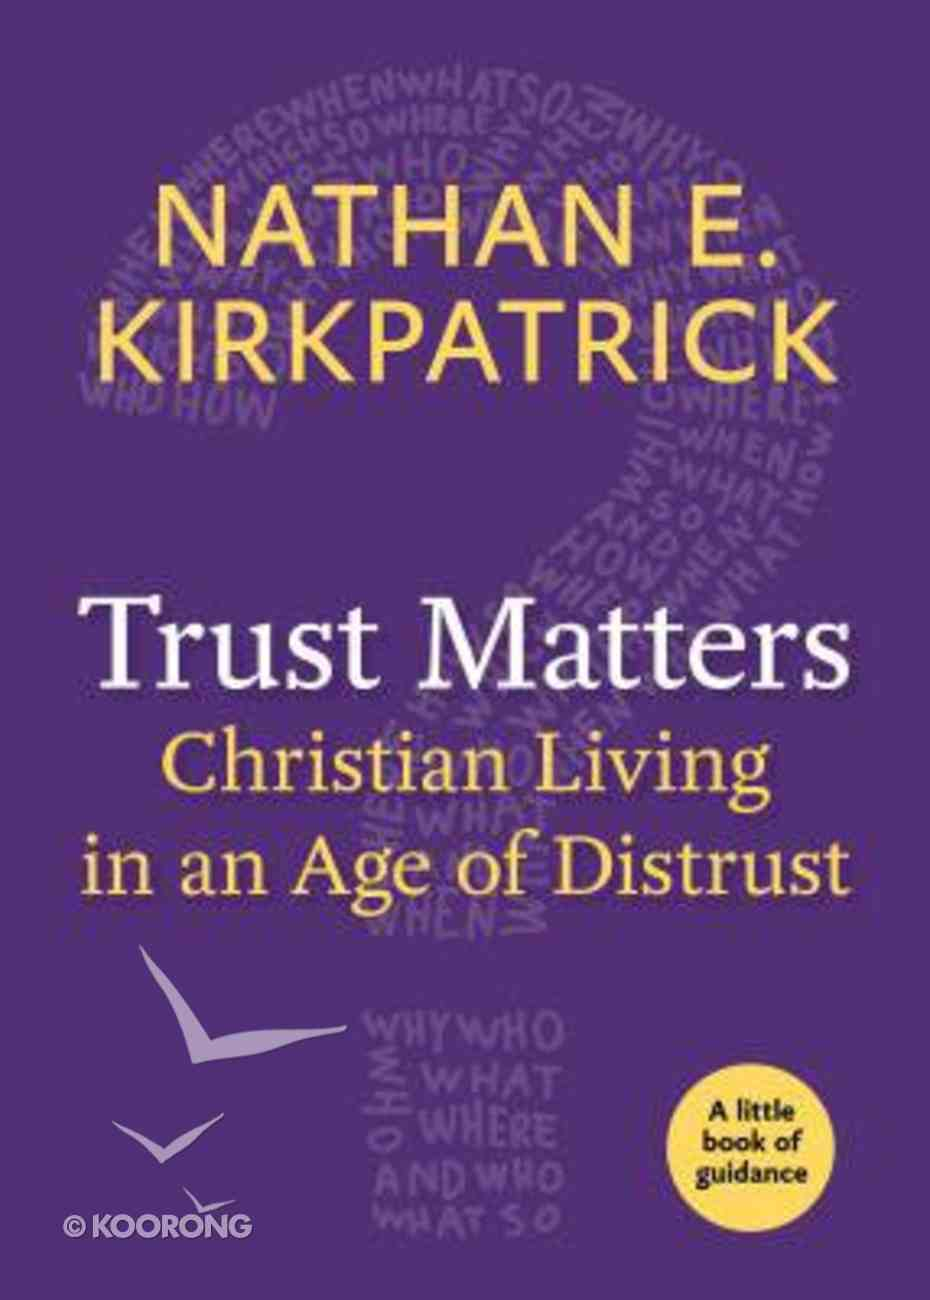 Trust Matters: Christian Living in An Age of Distrust (Little Book Of Guidance Series) Paperback